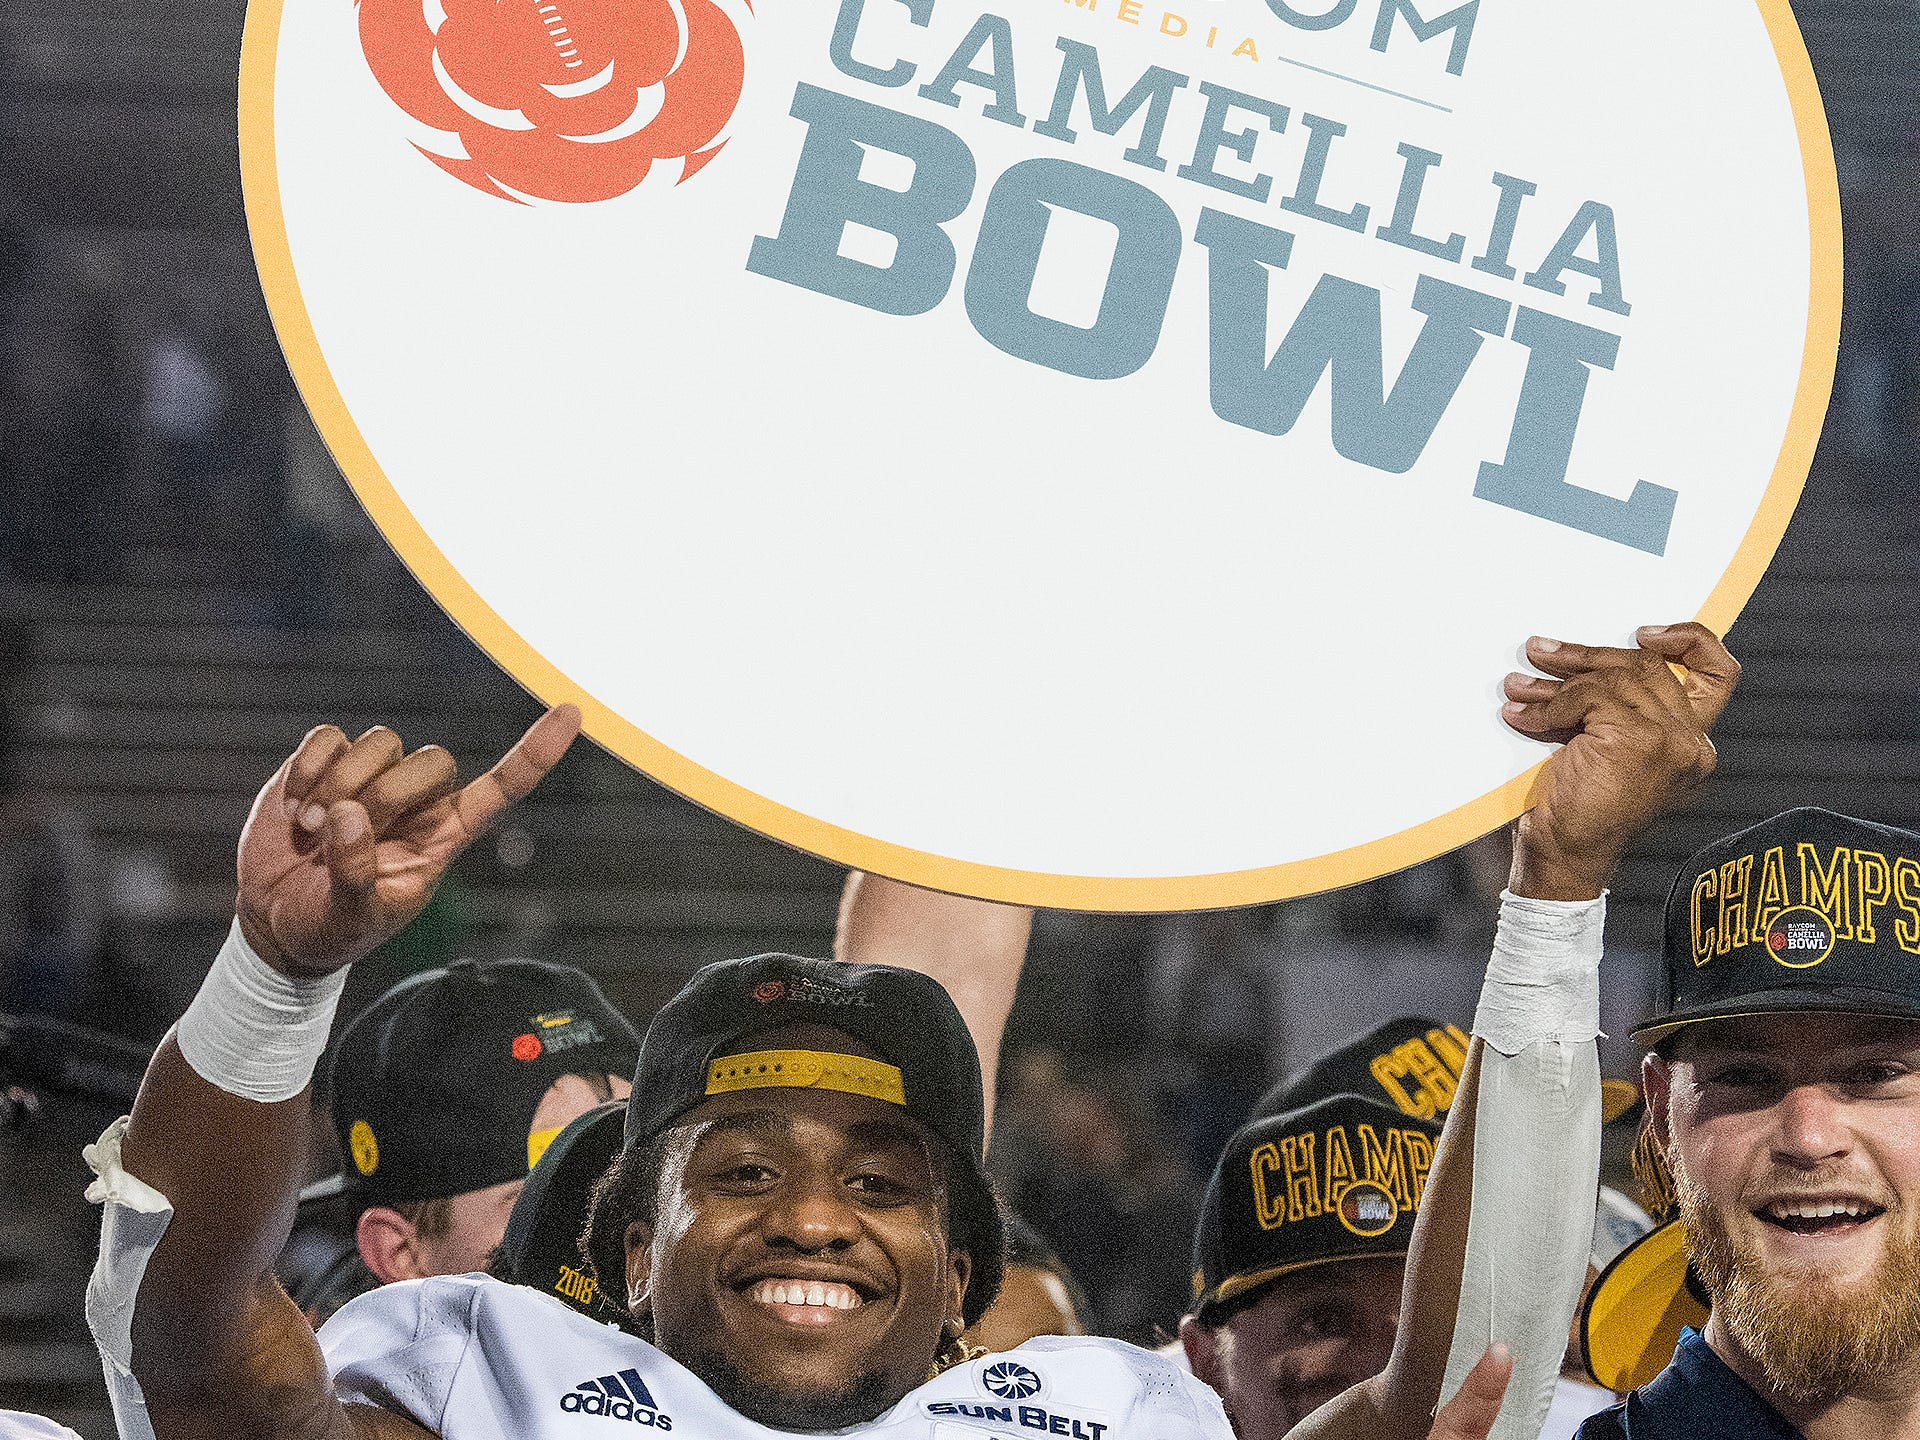 Georgia Southern running back Monteo Garrett (15) celebrates the win over Eastern Michigan in the Raycom Media  Camellia Bowl held at Cramton Bowl in Montgomery, Ala., on Saturday December 15, 2018.